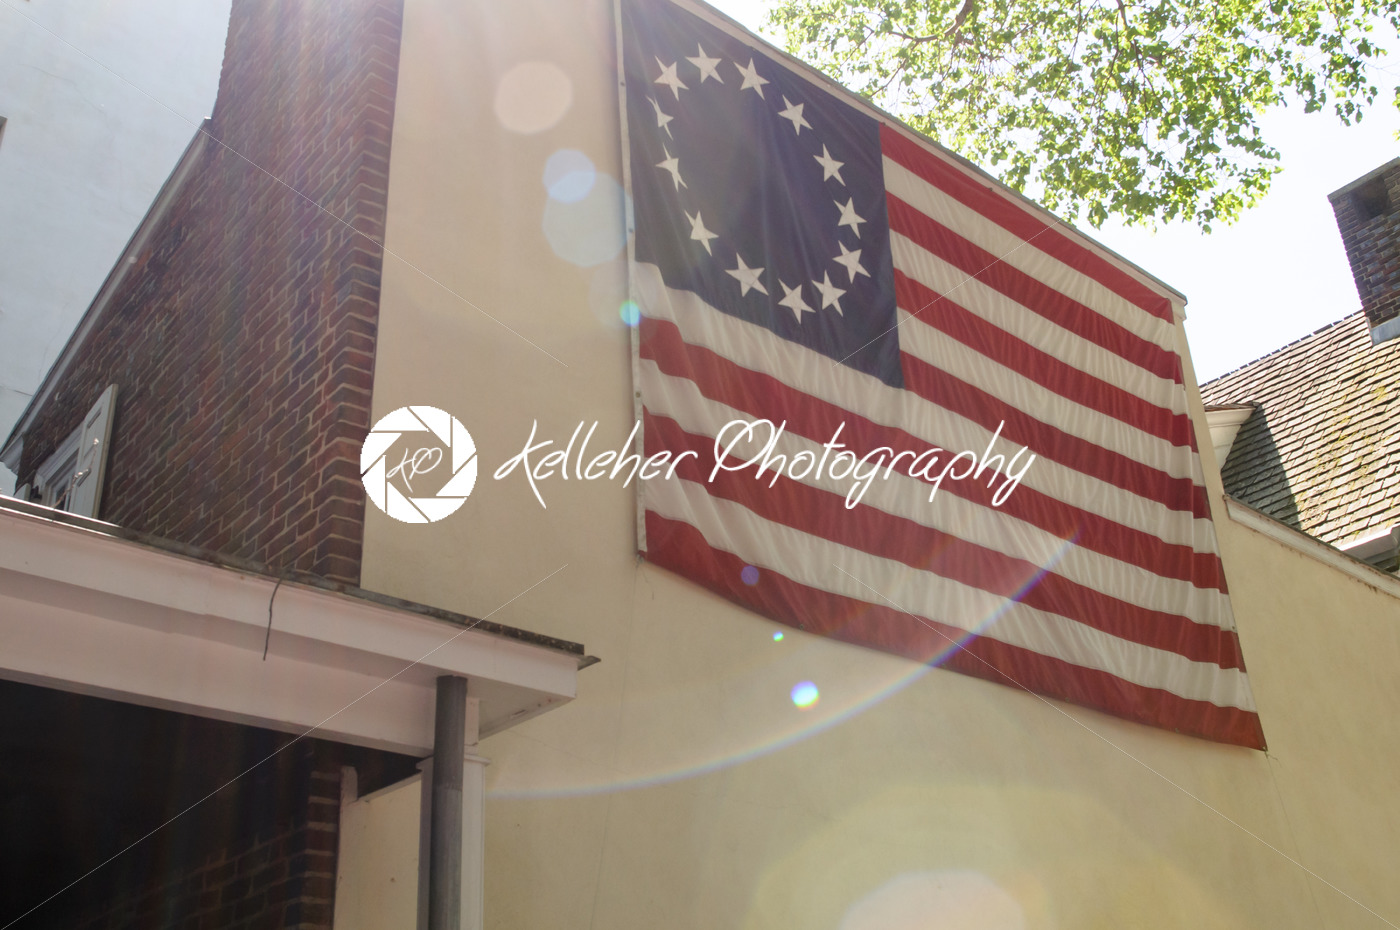 PHILADELPHIA, PA – MAY 14: American thirteen point historic flag often named the Betsy Ross flag, in front of the Betsy Ross House at 239 Arch Street on May 14, 2015 - Kelleher Photography Store